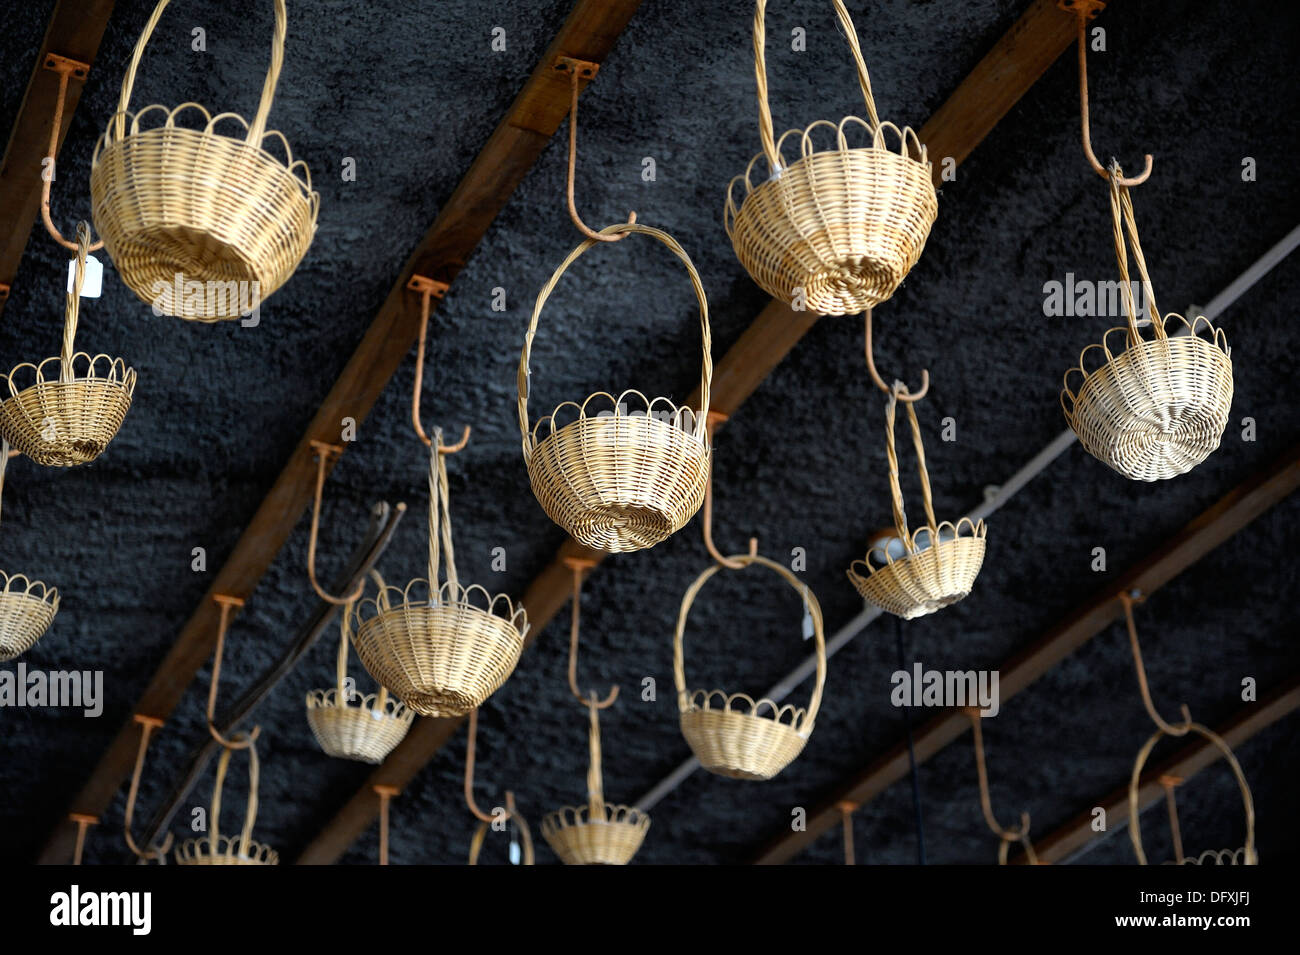 Small wicker basket hanging from a factory shop ceiling Camacha Madeira portugal - Stock Image